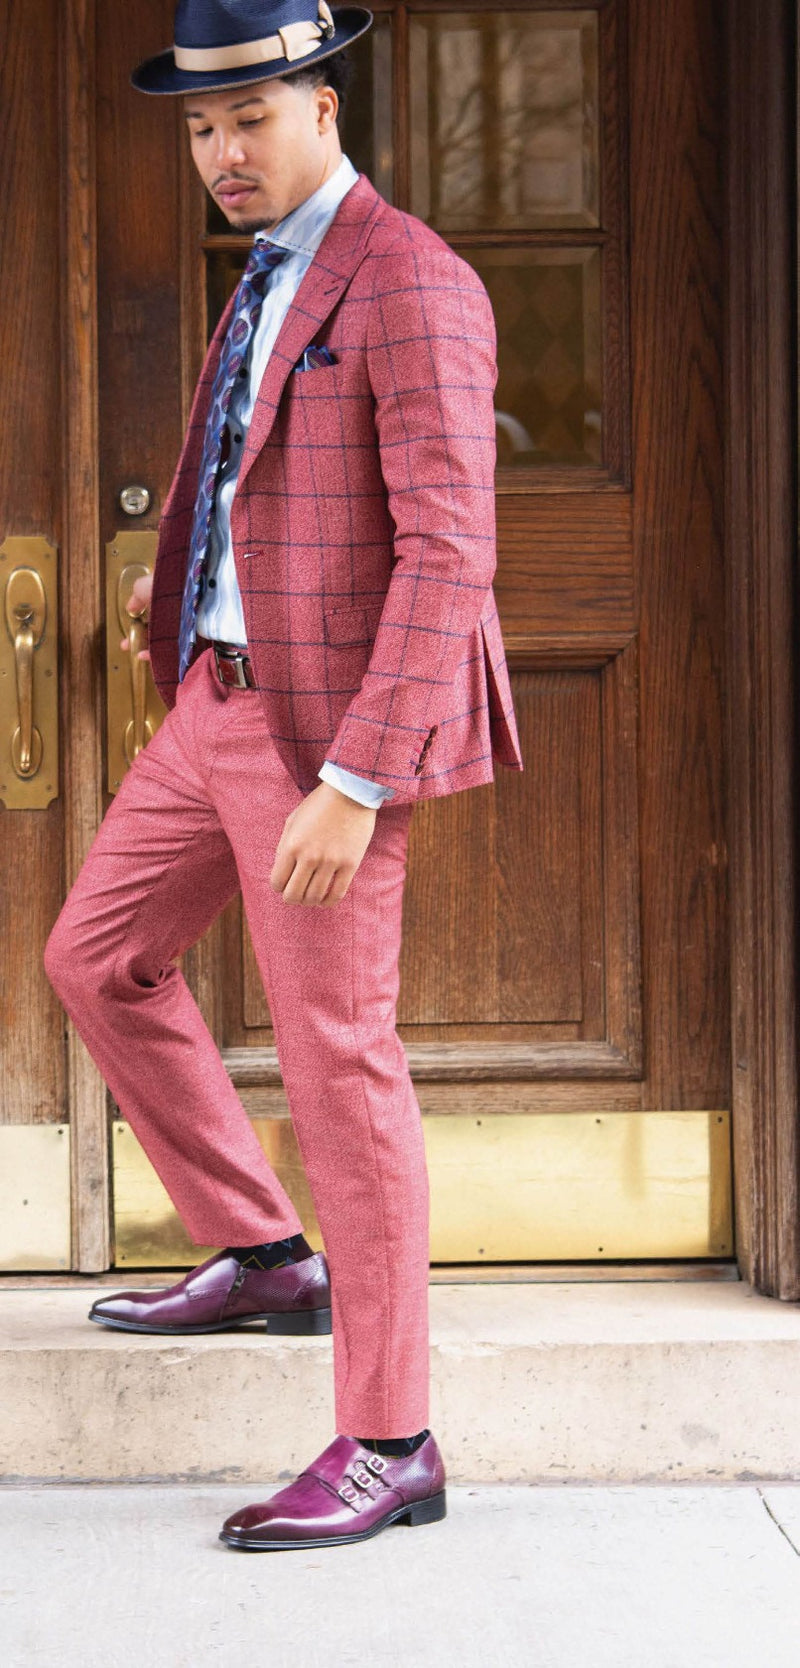 Steven Land | Ares | Windowpane Check 2 Piece Suit | Slim Fit | Playboy Berry